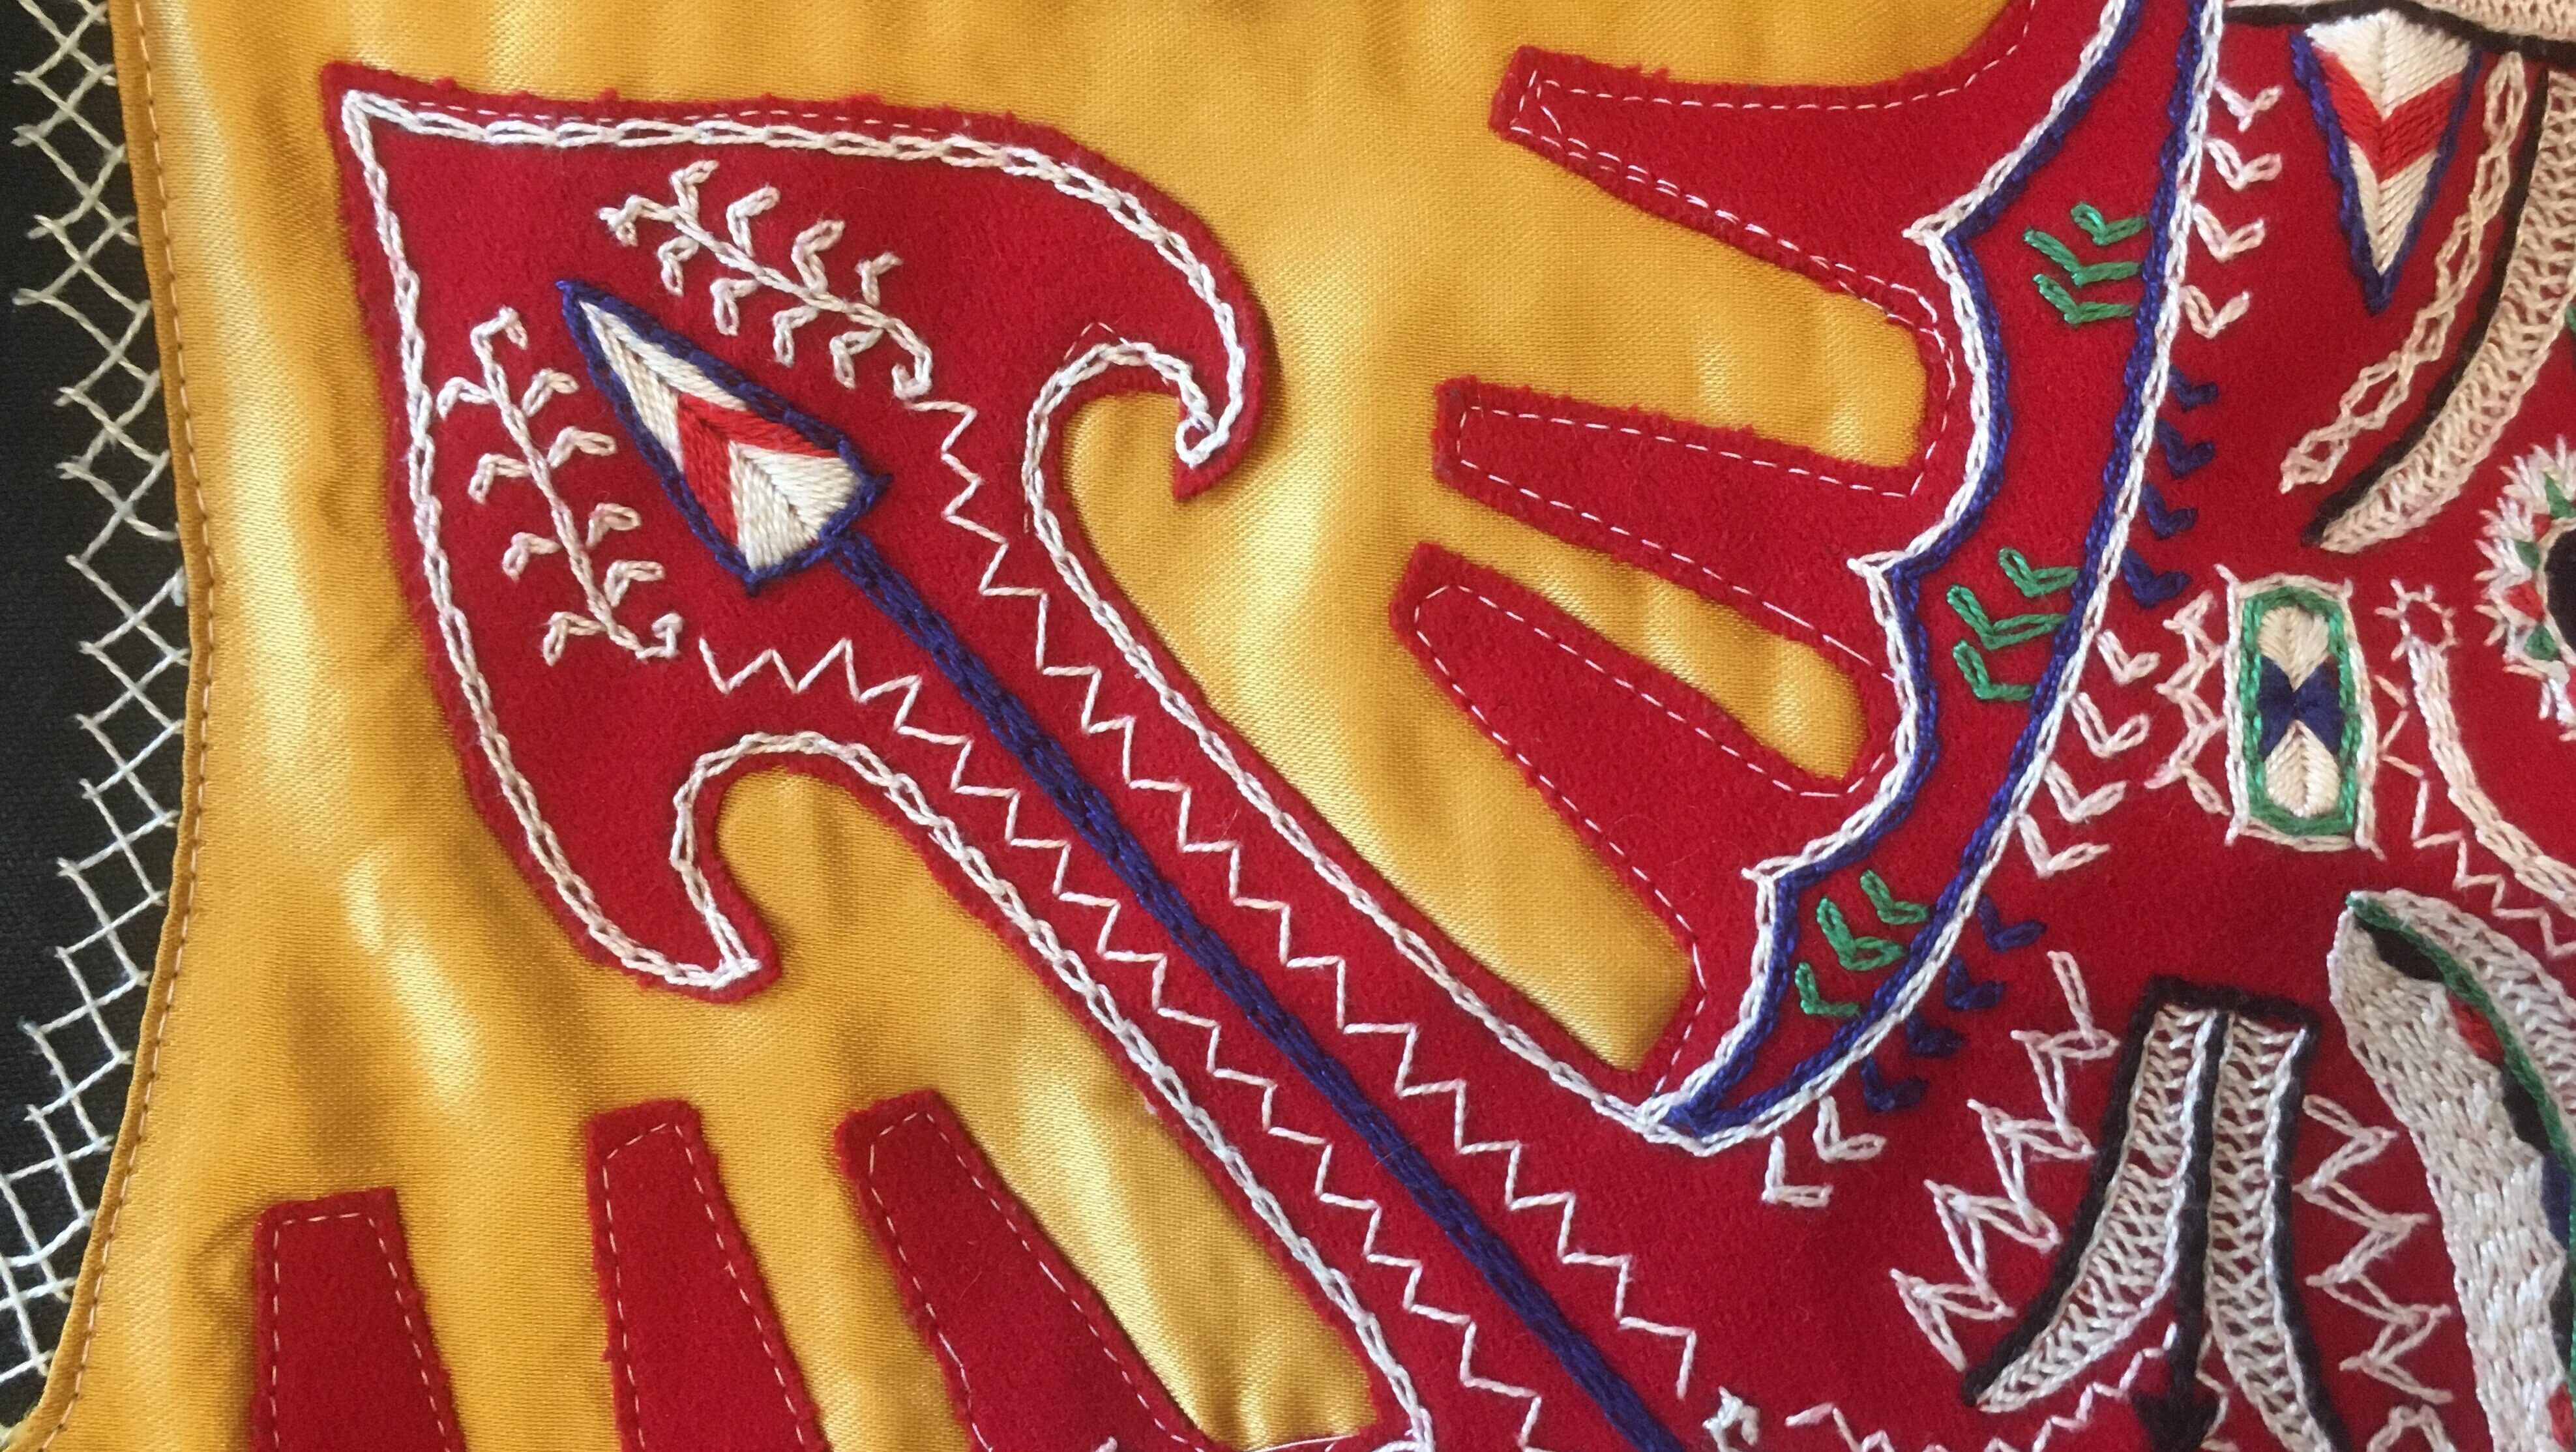 Detail of embroidery on the traditional attire of Drimos, Macedonia